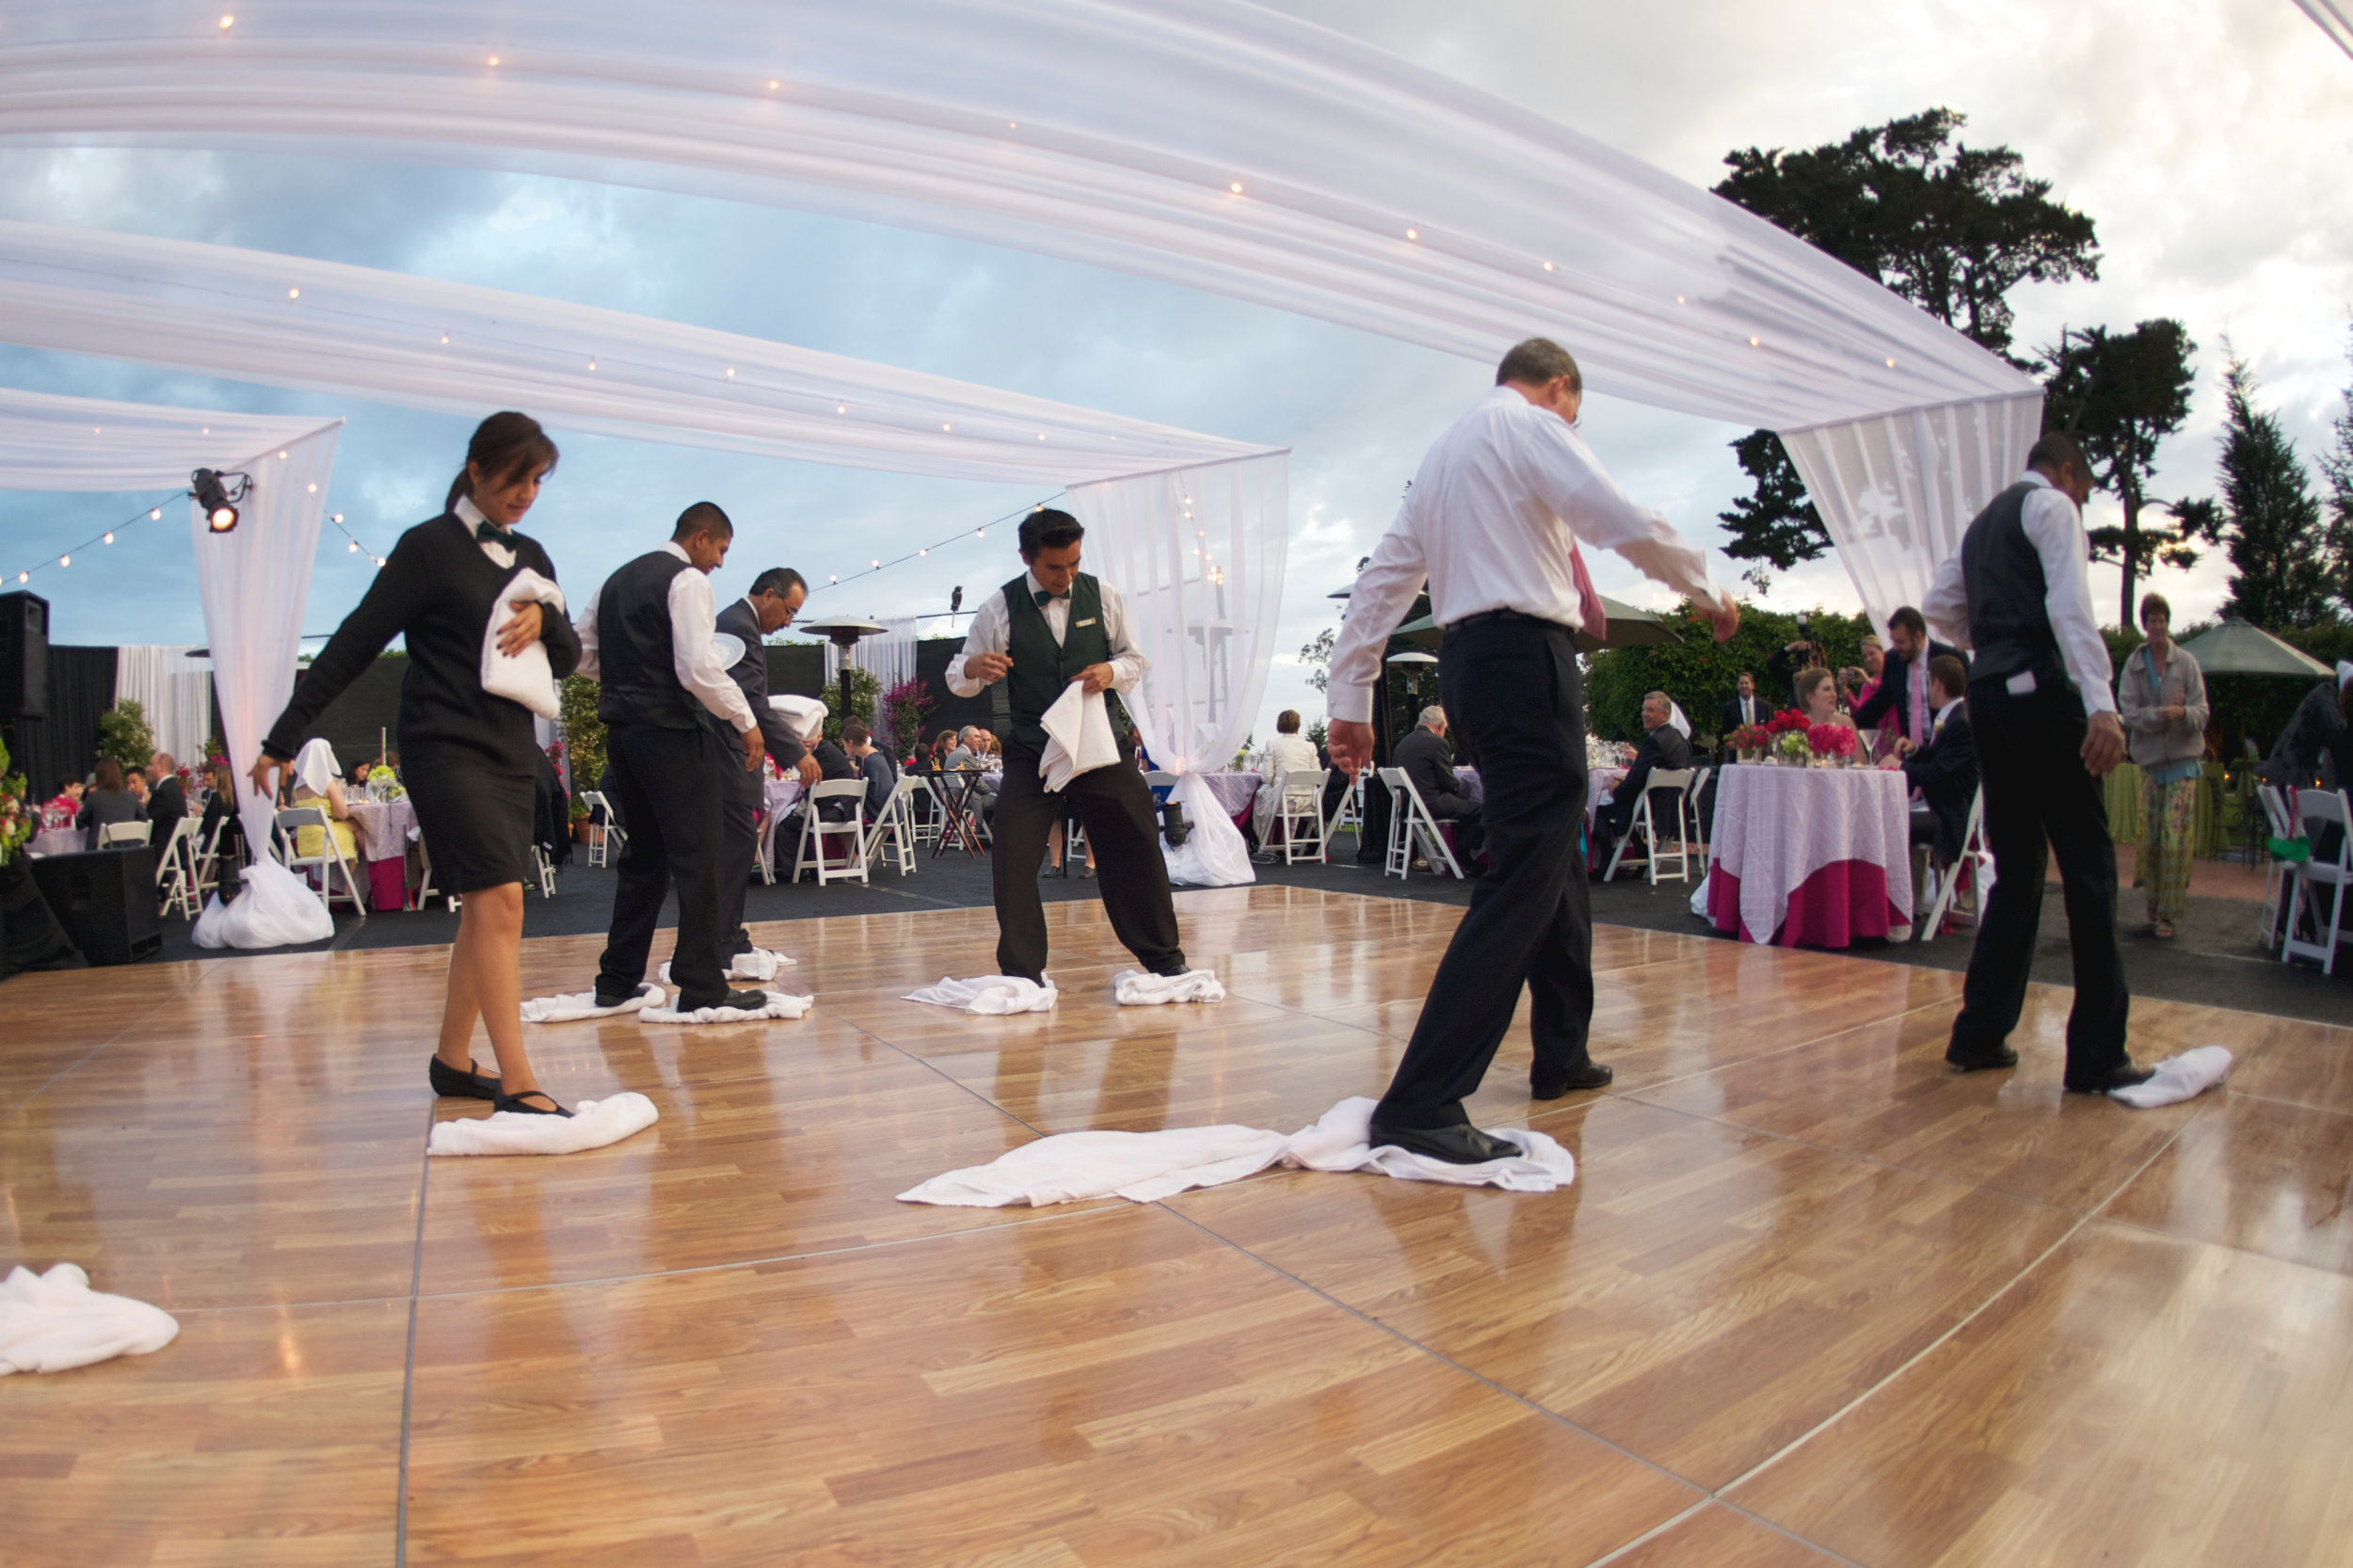 It did, in fact, rain on our wedding day! My planner had the staff (enthusiastically assisted by my dad) out there cleaning off the dance floor plus a backup plan in place, and it became a funny story to tell instead of a disaster.